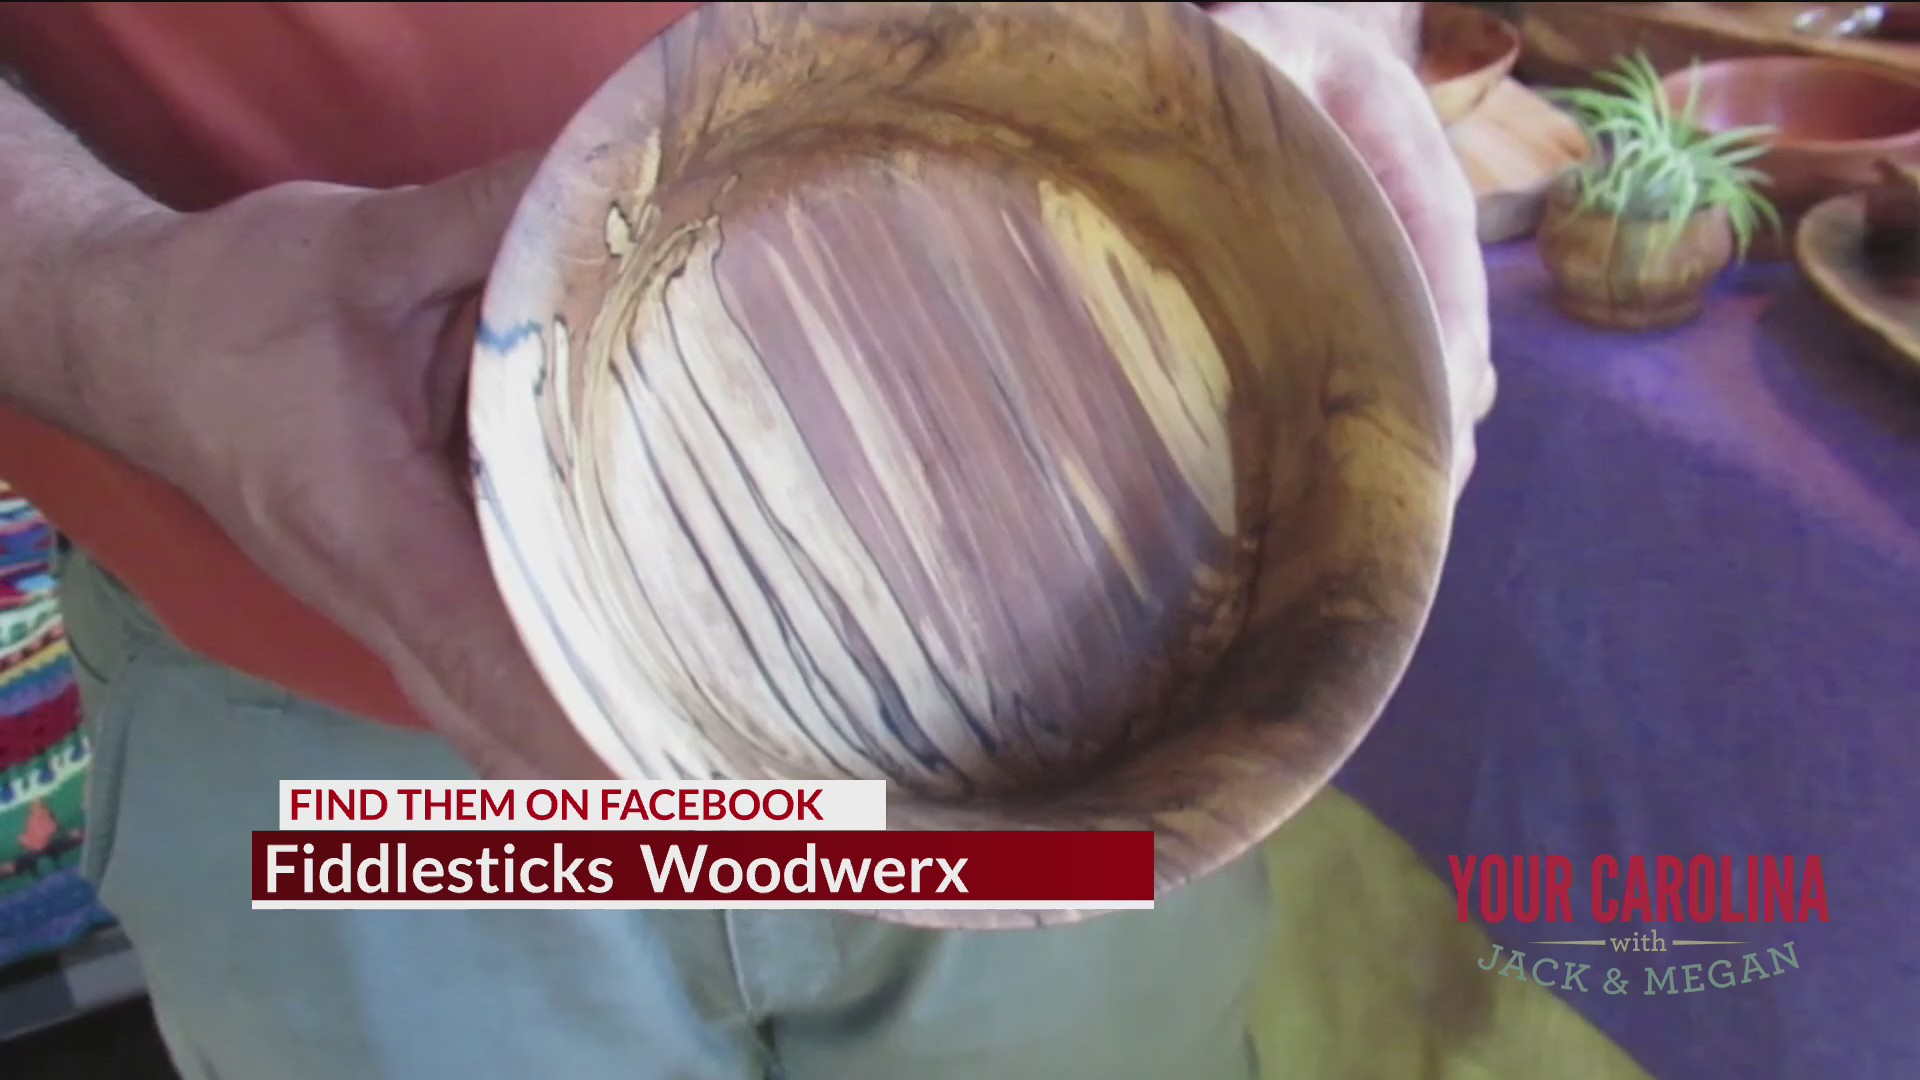 Fiddlesticks Woodwerx turns Upstate trees into treasures